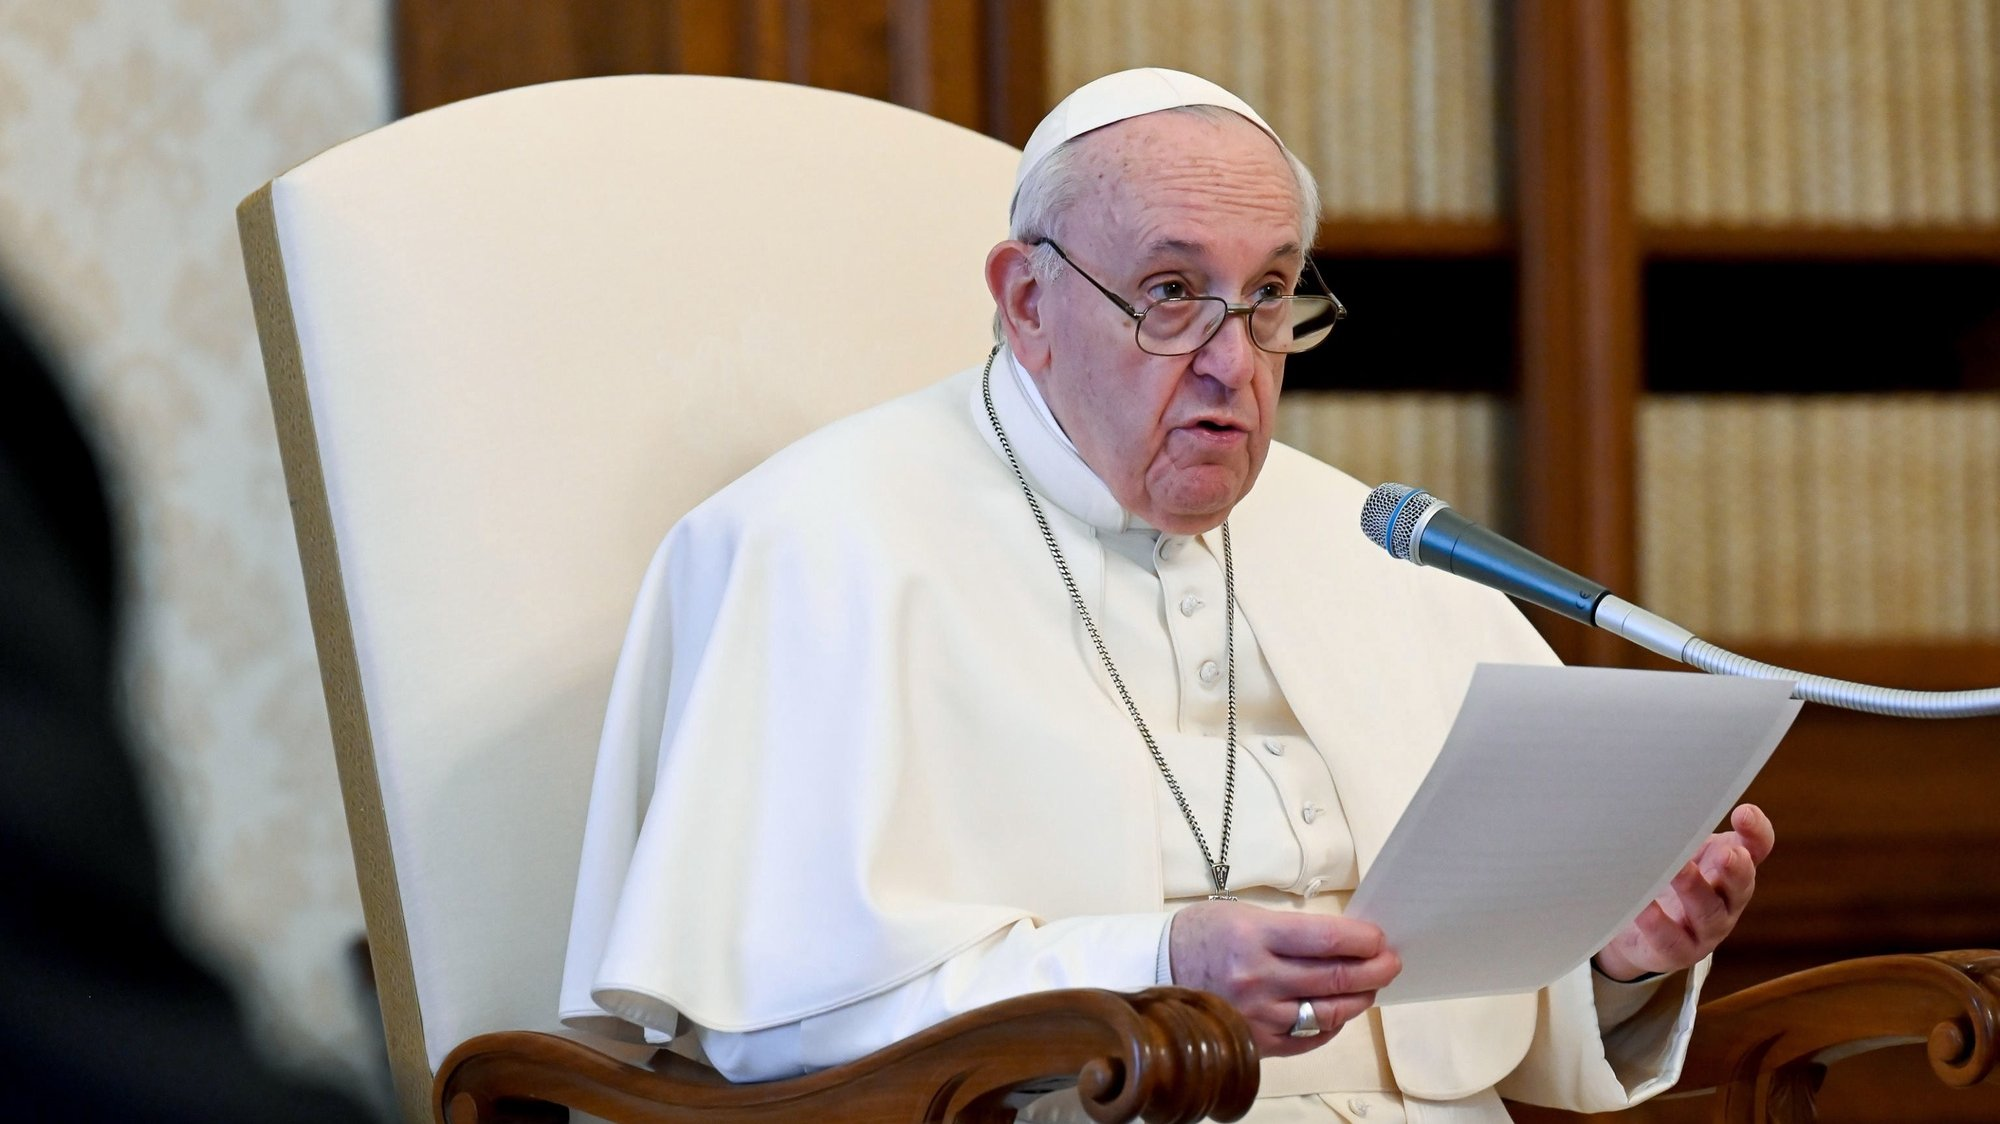 epa08983699 A handout photo made available by the Vatican Media shows Pope Francis during his weekly general audience in Vatican City, 03 February 2021.  EPA/VATICAN MEDIA / HANDOUT  HANDOUT EDITORIAL USE ONLY/NO SALES